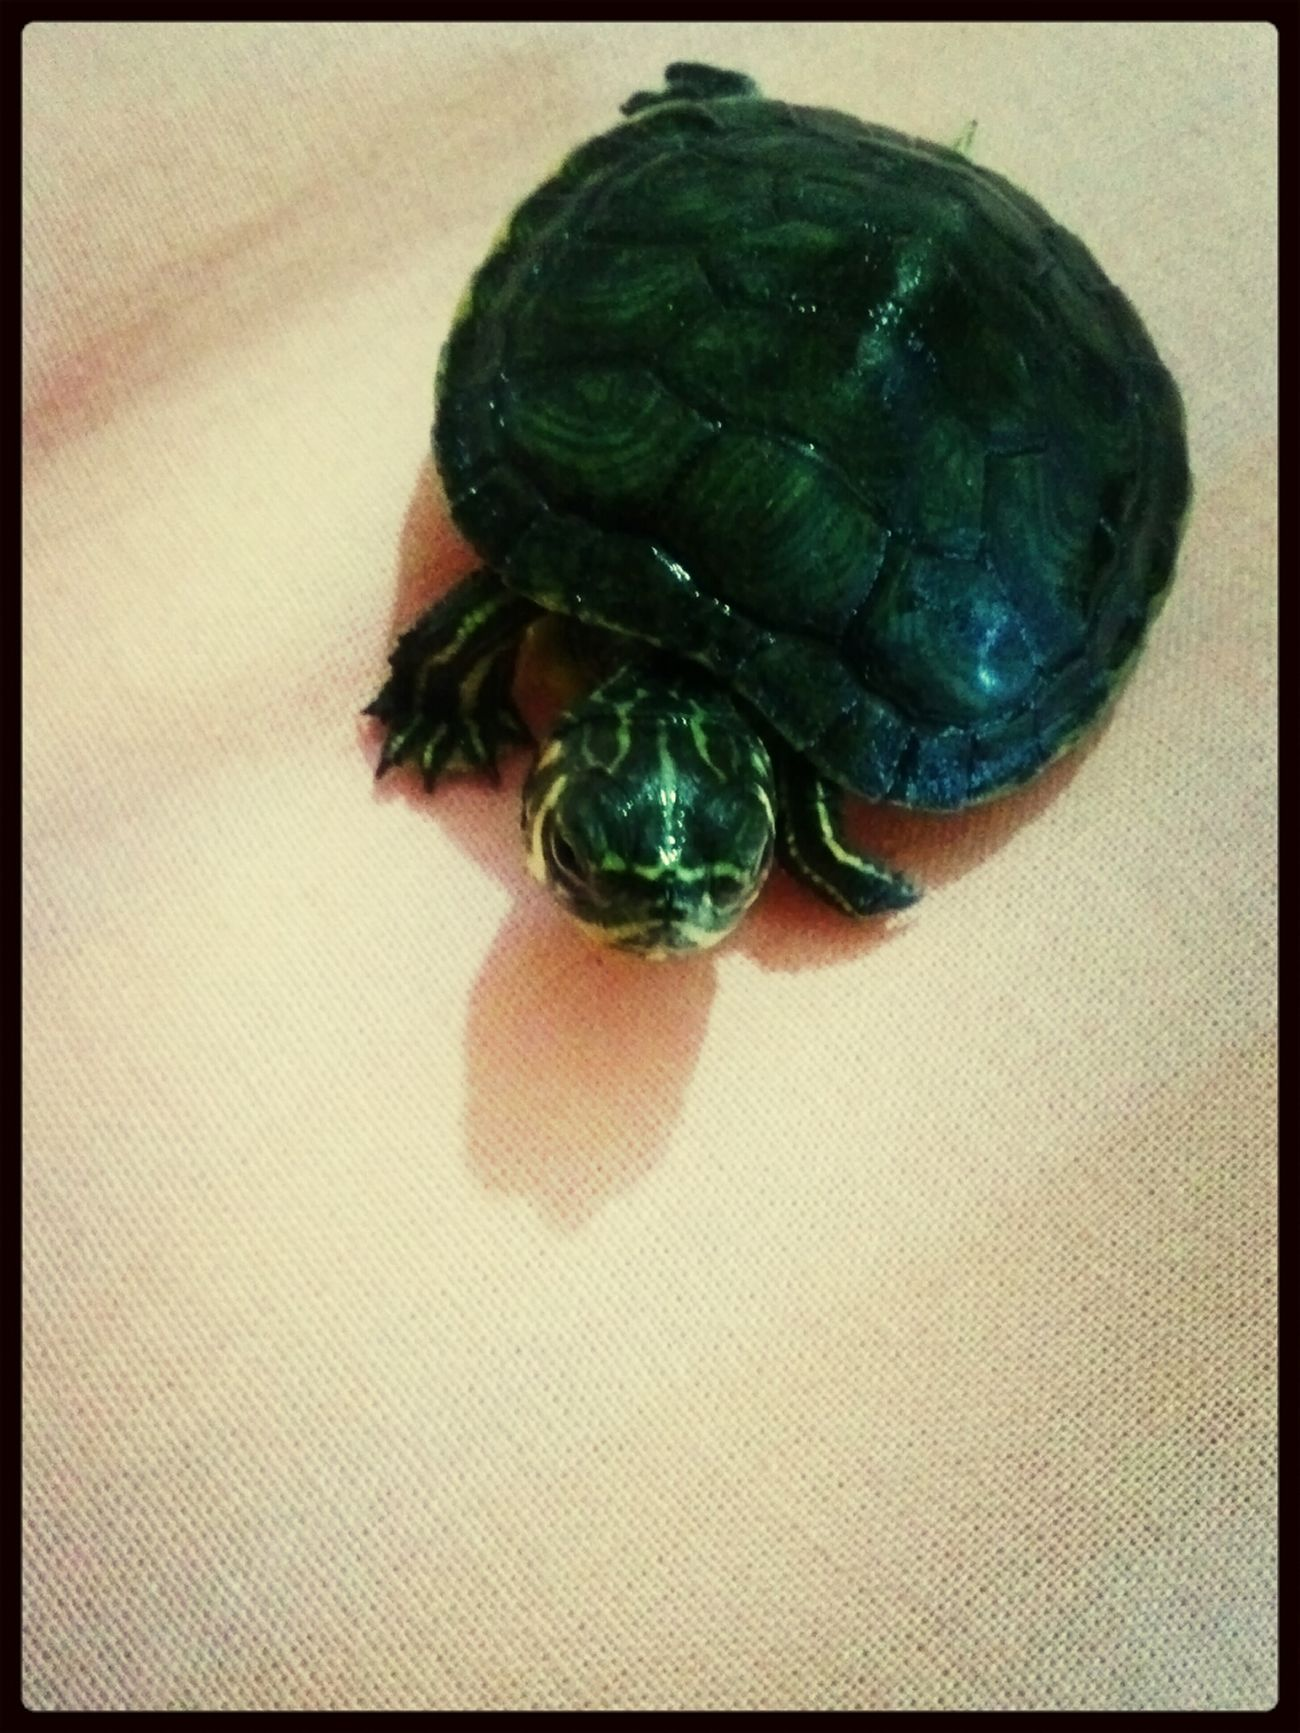 My little turtle Bae. *^* Sea Turtle Turtles(: Turtle Cute Pets